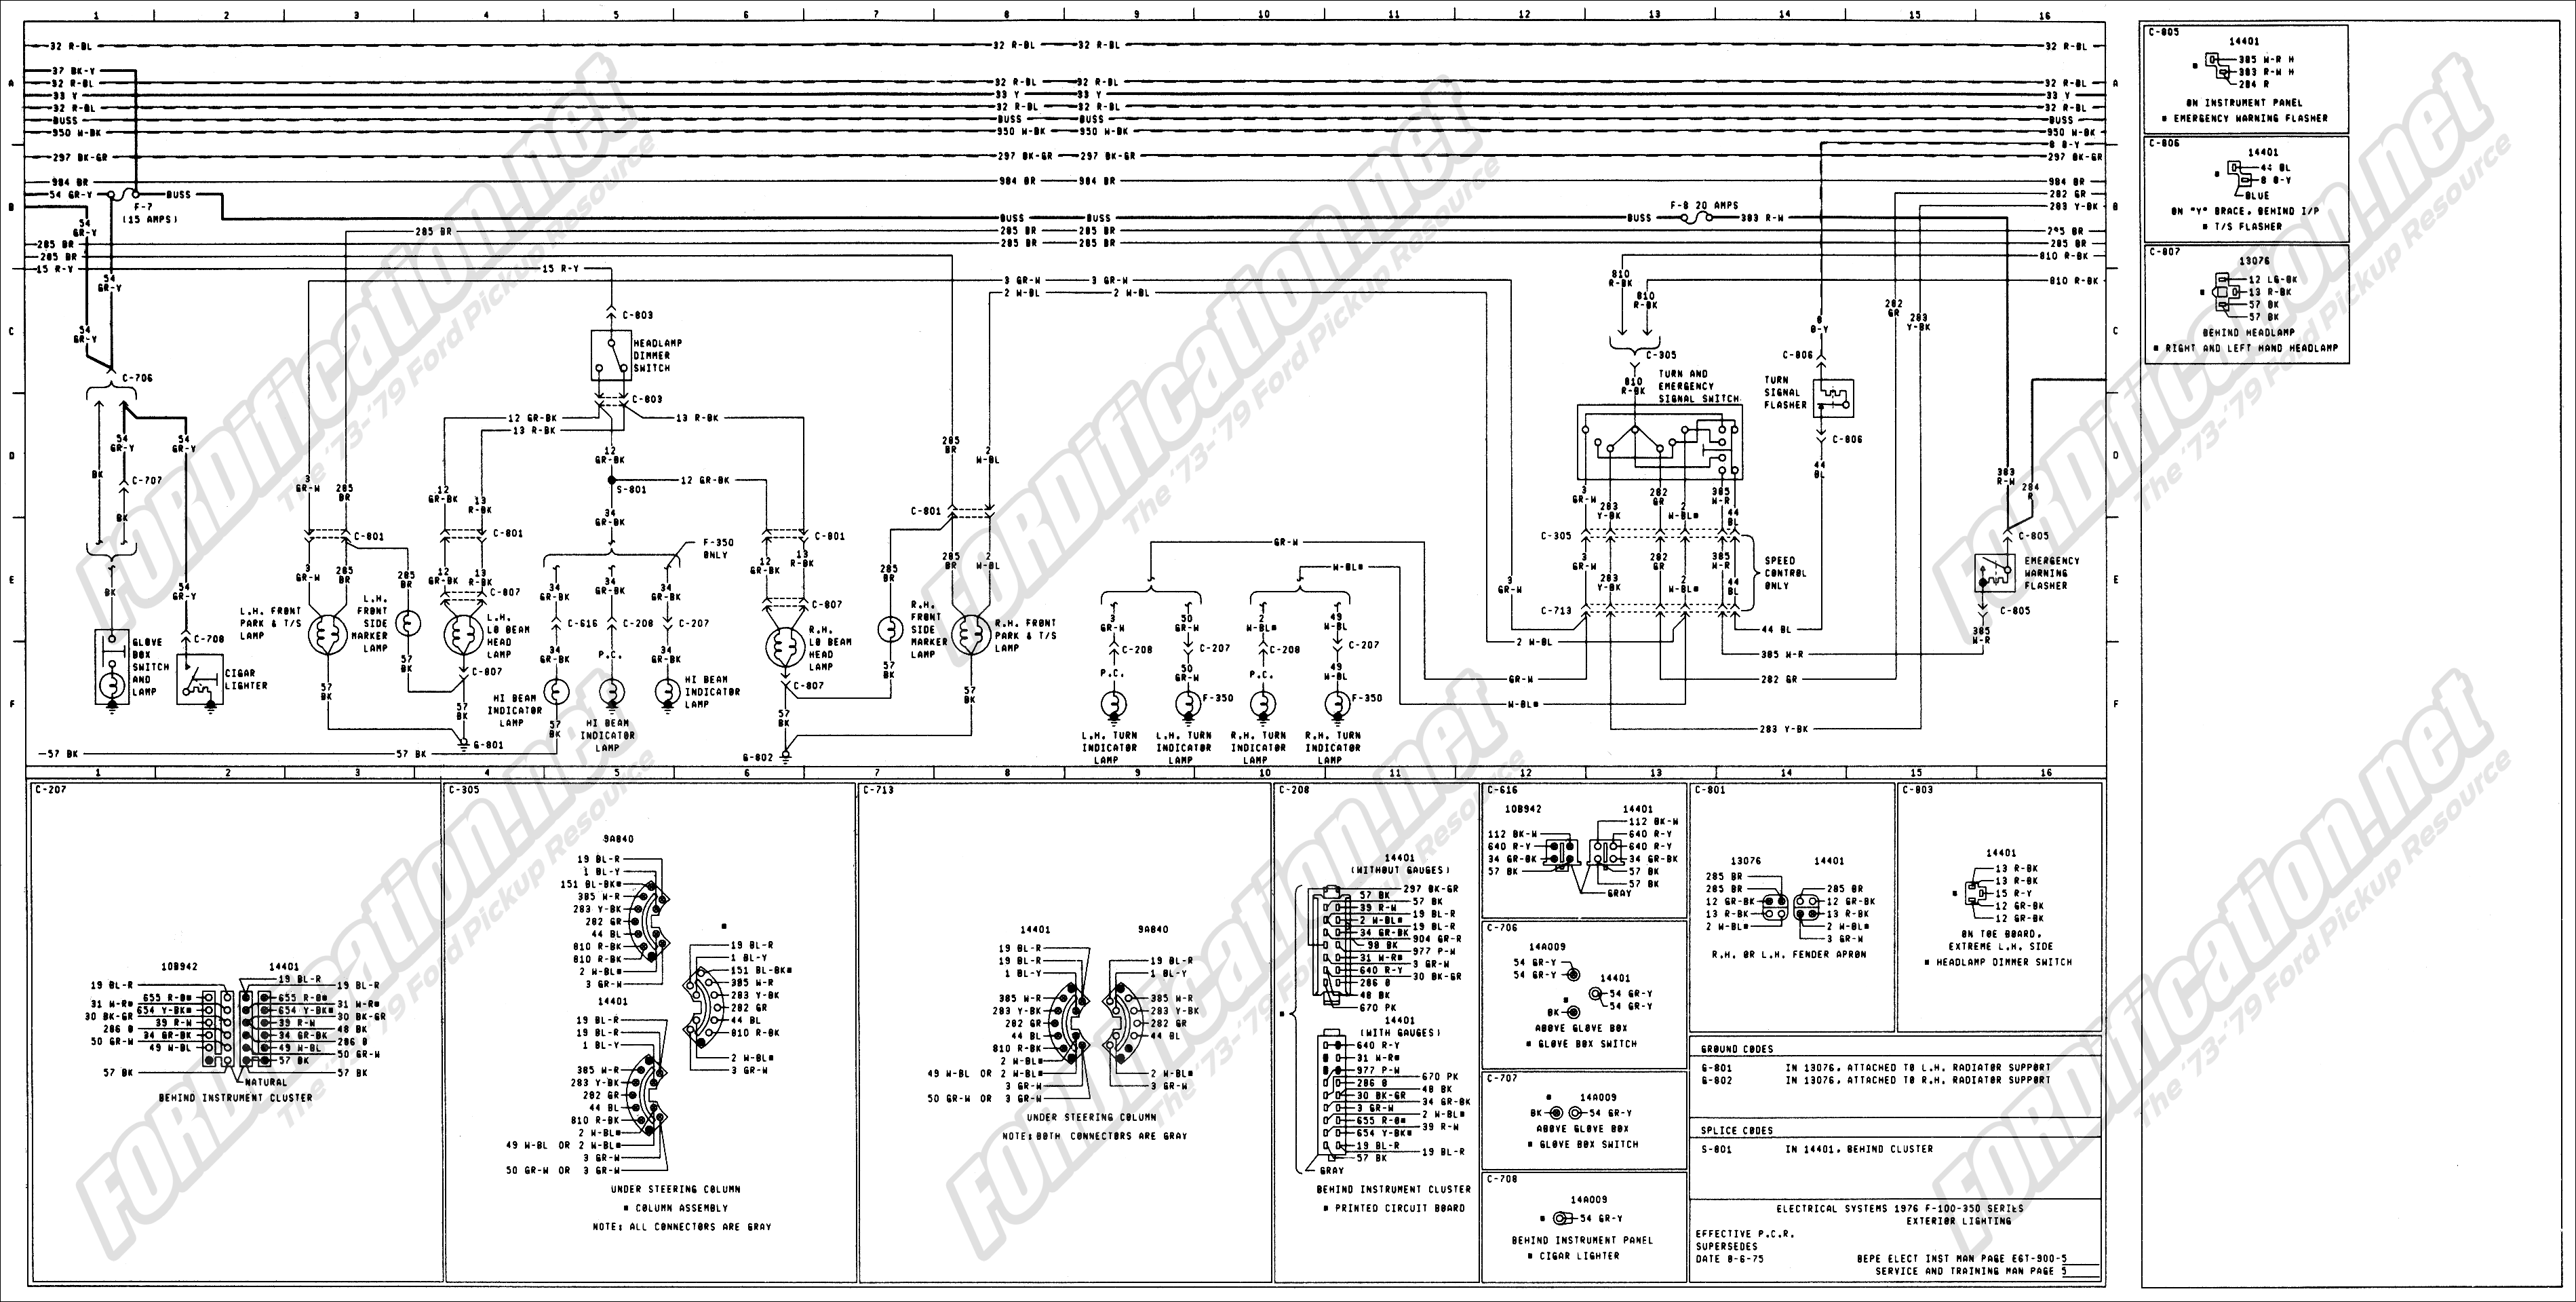 1977 ford f150 wiring diagram schematics wiring data u2022 rh case hub co Ford Explorer Alternator Diagram Ford 3G Alternator Wiring Diagram